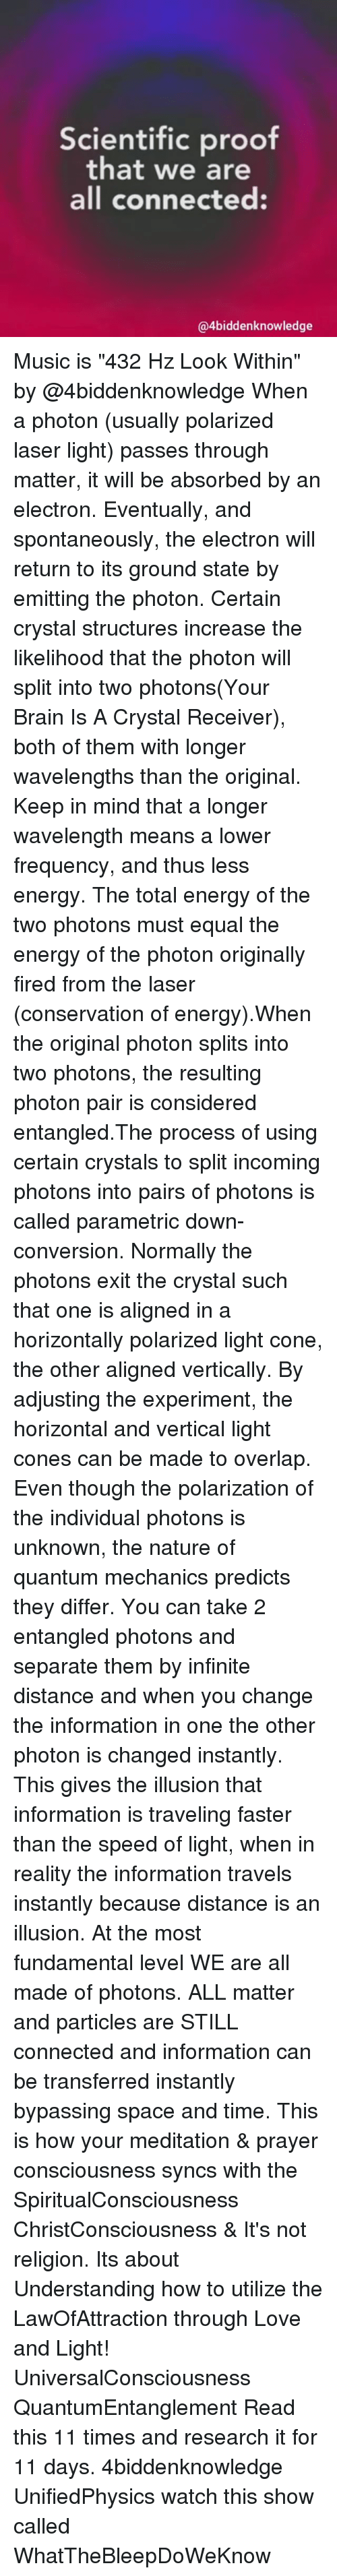 "Coneing: Scientific proof  that we are  all connected:  @4biddenknowledge Music is ""432 Hz Look Within"" by @4biddenknowledge When a photon (usually polarized laser light) passes through matter, it will be absorbed by an electron. Eventually, and spontaneously, the electron will return to its ground state by emitting the photon. Certain crystal structures increase the likelihood that the photon will split into two photons(Your Brain Is A Crystal Receiver), both of them with longer wavelengths than the original. Keep in mind that a longer wavelength means a lower frequency, and thus less energy. The total energy of the two photons must equal the energy of the photon originally fired from the laser (conservation of energy).When the original photon splits into two photons, the resulting photon pair is considered entangled.The process of using certain crystals to split incoming photons into pairs of photons is called parametric down-conversion. Normally the photons exit the crystal such that one is aligned in a horizontally polarized light cone, the other aligned vertically. By adjusting the experiment, the horizontal and vertical light cones can be made to overlap. Even though the polarization of the individual photons is unknown, the nature of quantum mechanics predicts they differ. You can take 2 entangled photons and separate them by infinite distance and when you change the information in one the other photon is changed instantly. This gives the illusion that information is traveling faster than the speed of light, when in reality the information travels instantly because distance is an illusion. At the most fundamental level WE are all made of photons. ALL matter and particles are STILL connected and information can be transferred instantly bypassing space and time. This is how your meditation & prayer consciousness syncs with the SpiritualConsciousness ChristConsciousness & It's not religion. Its about Understanding how to utilize the LawOfAttraction through Love and Light! UniversalConsciousness QuantumEntanglement Read this 11 times and research it for 11 days. 4biddenknowledge UnifiedPhysics watch this show called WhatTheBleepDoWeKnow"